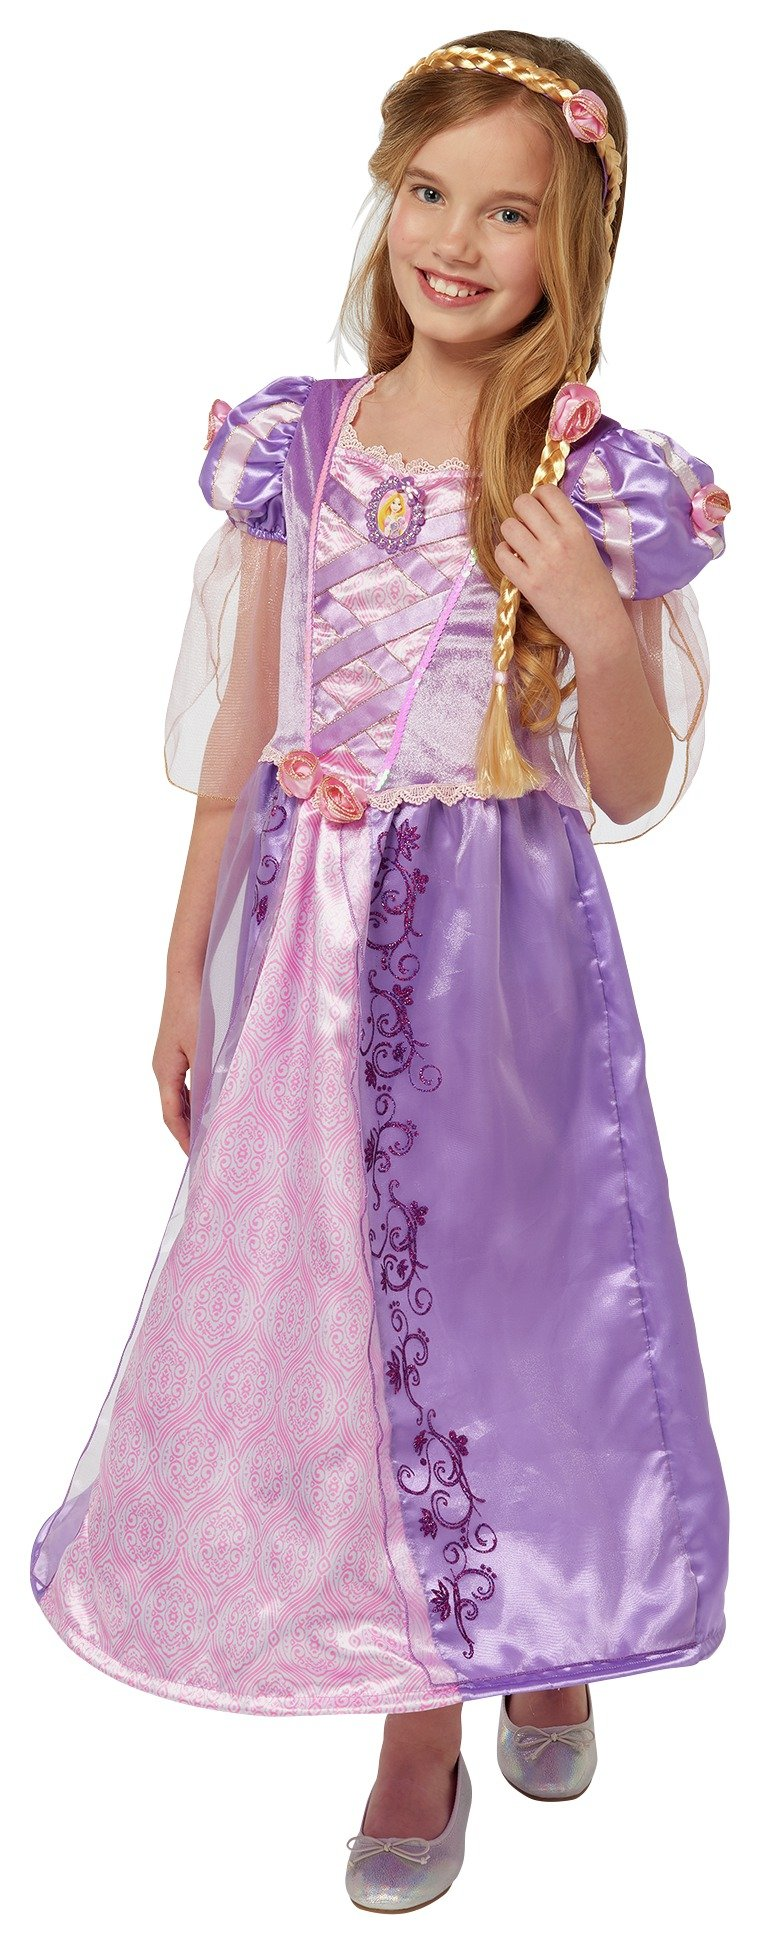 disney-princess-rapunzel-fancy-dress-costume-3-4-years